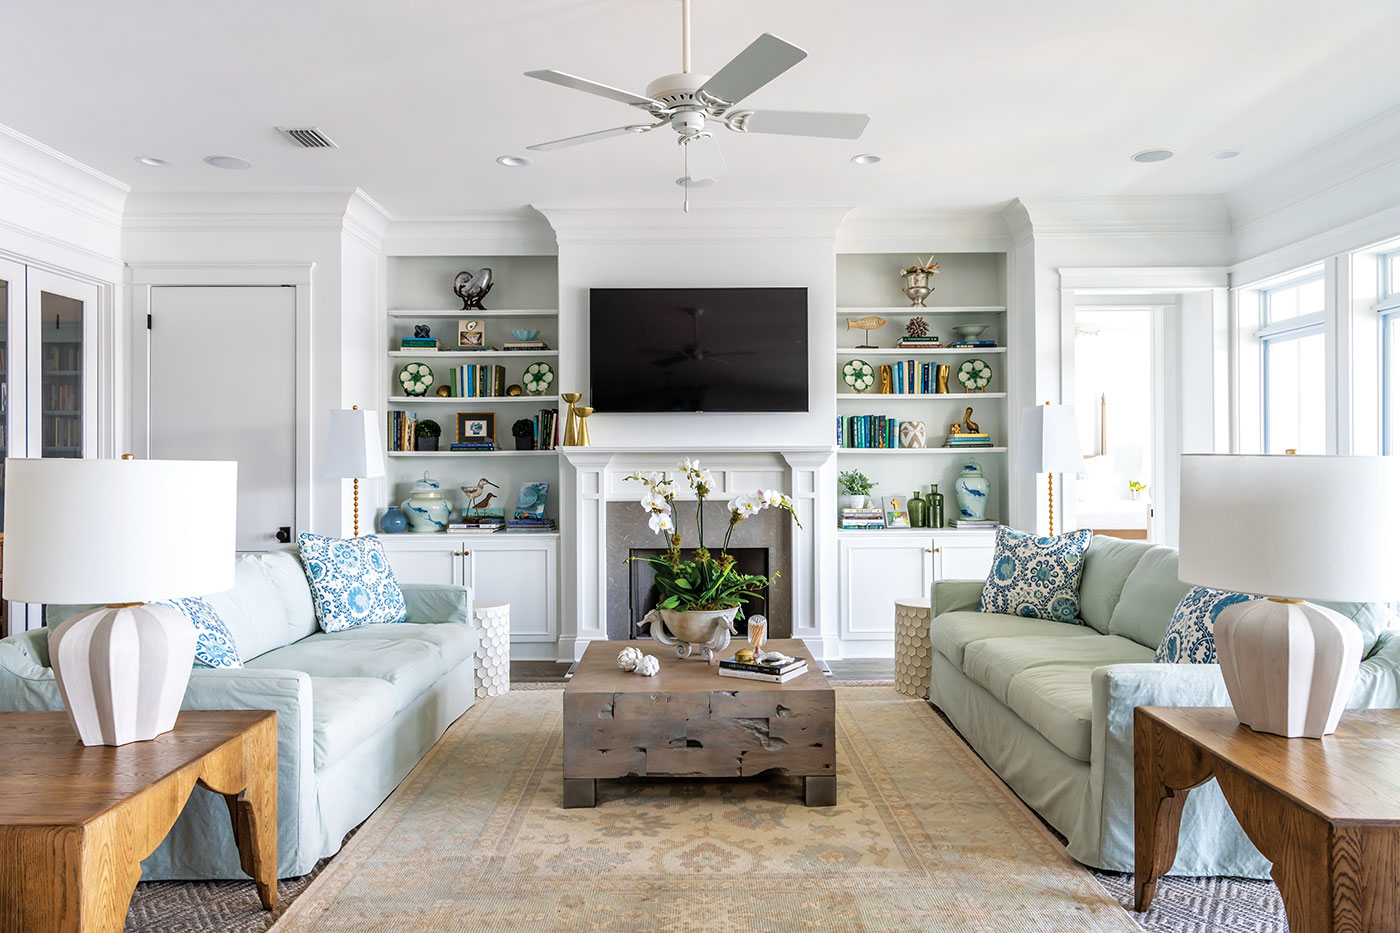 Living room decorated with coastal accents